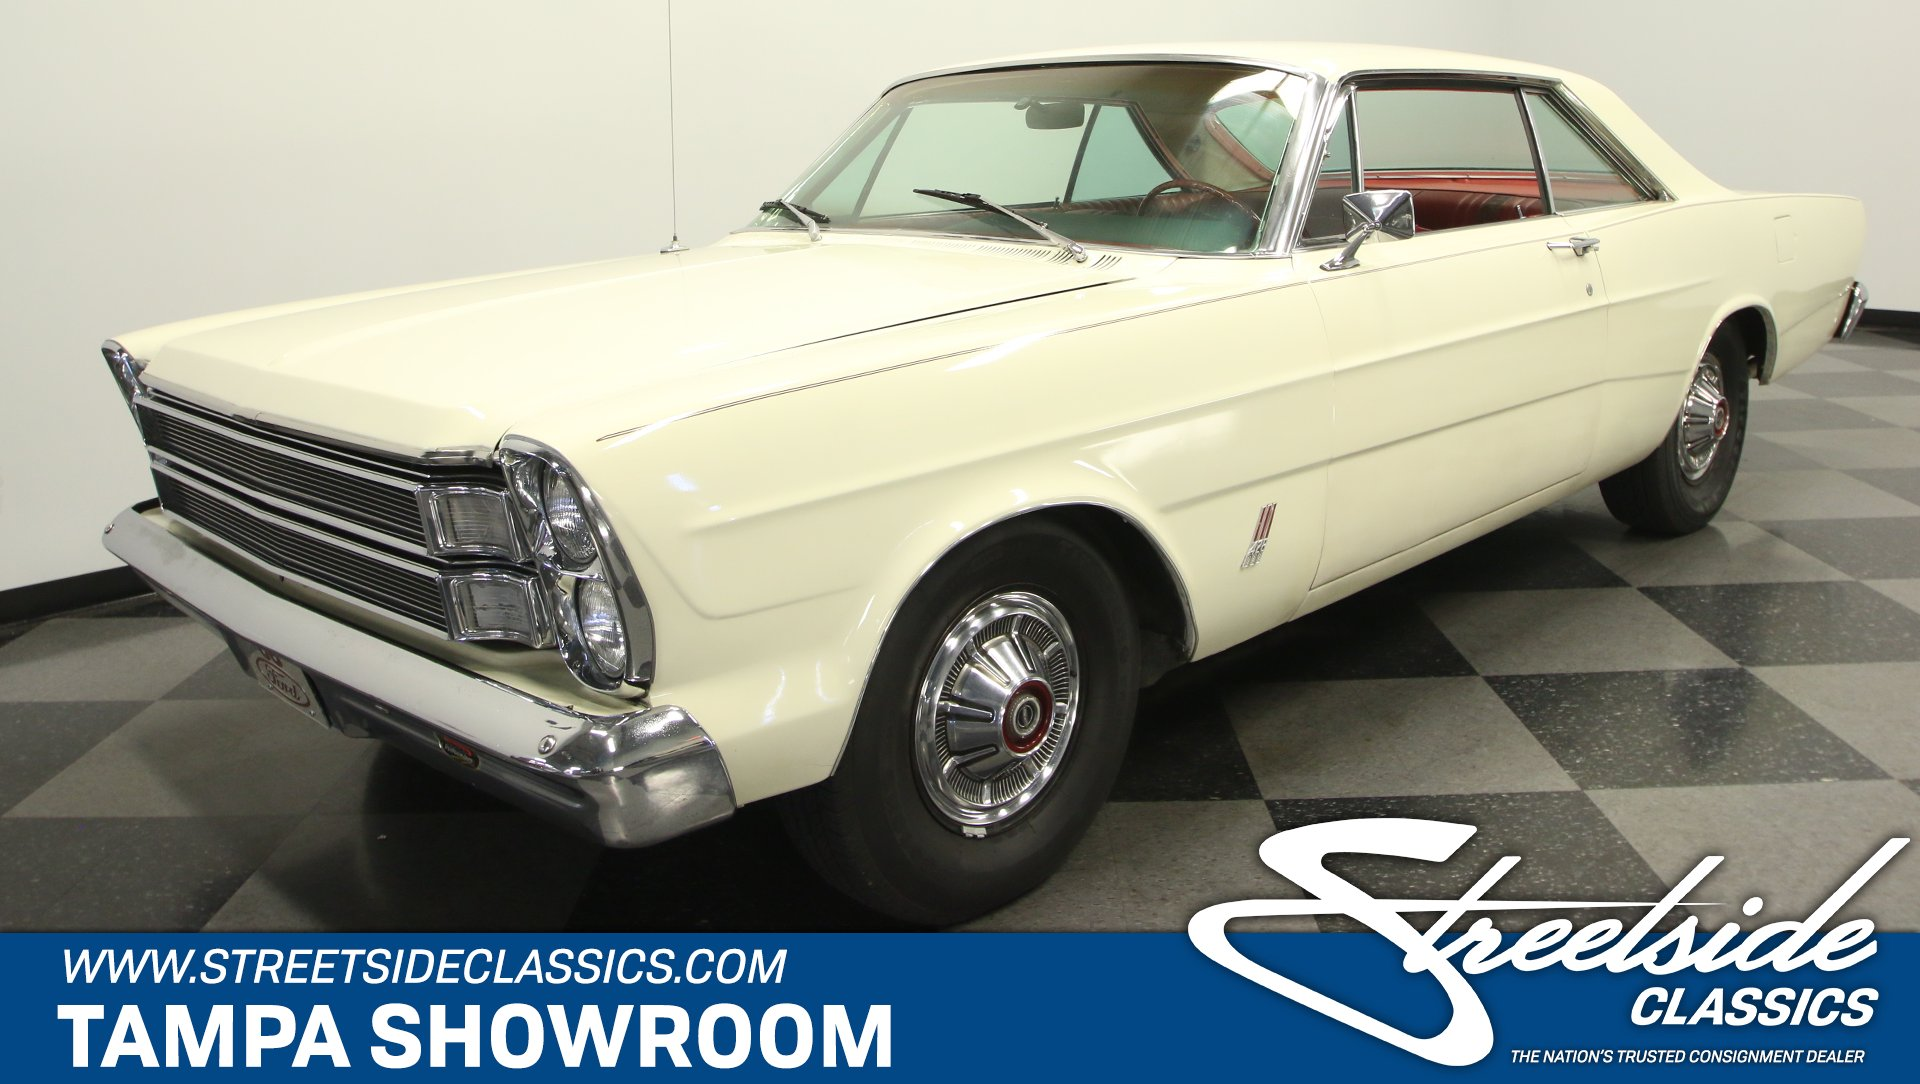 1966 Ford Galaxie Classic Cars For Sale Streetside Classics The Nation S 1 Consignment Dealer